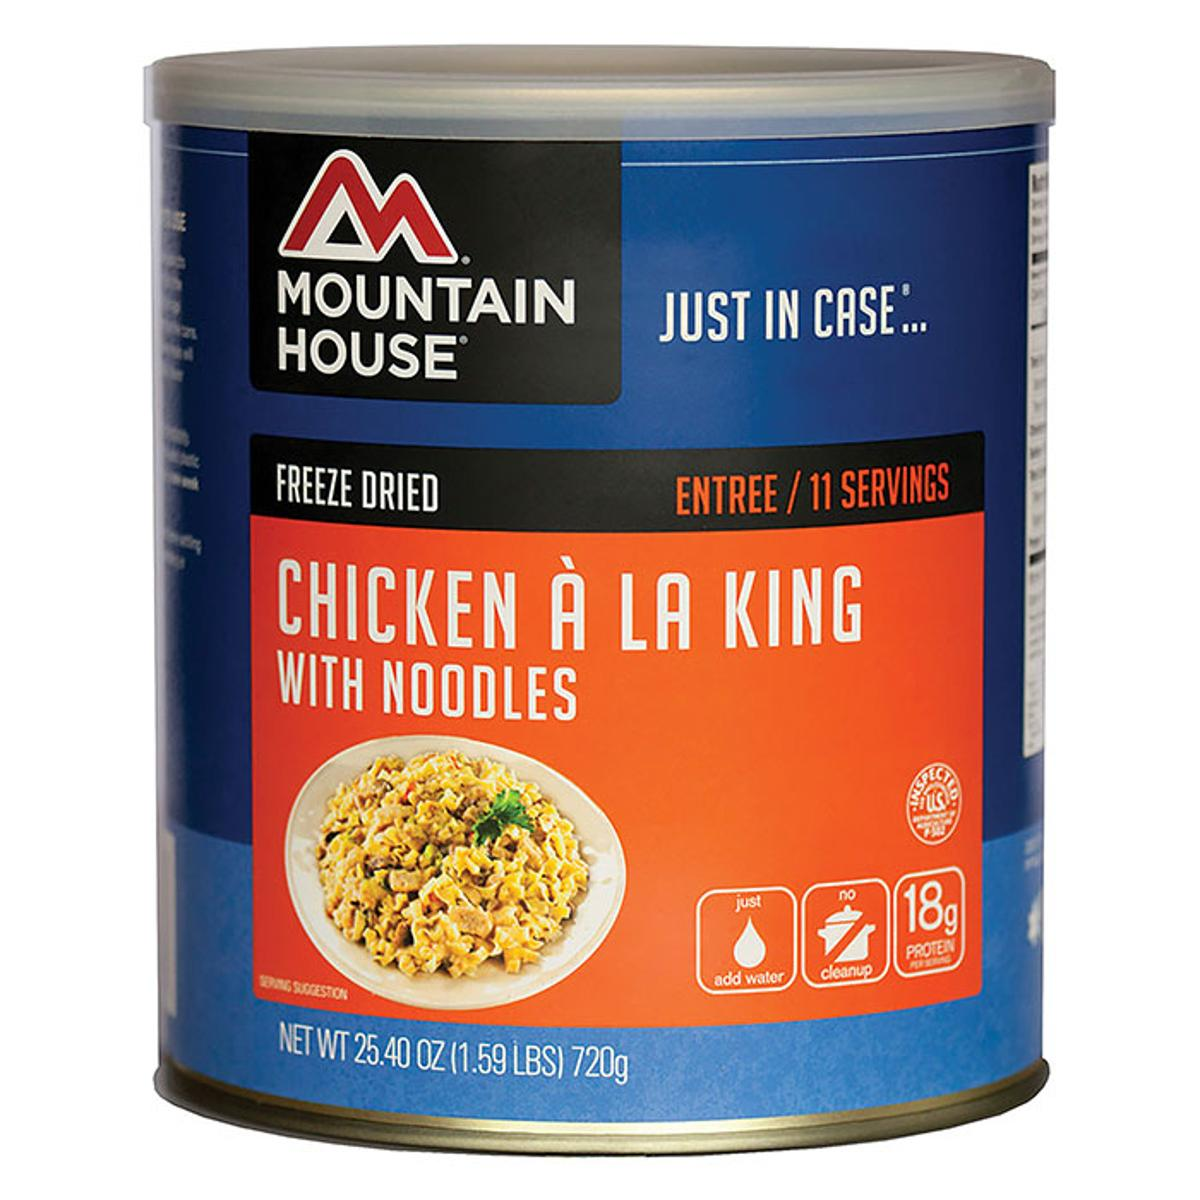 Mountain House #10 Chicken Ala King & Noodles Can - 30111